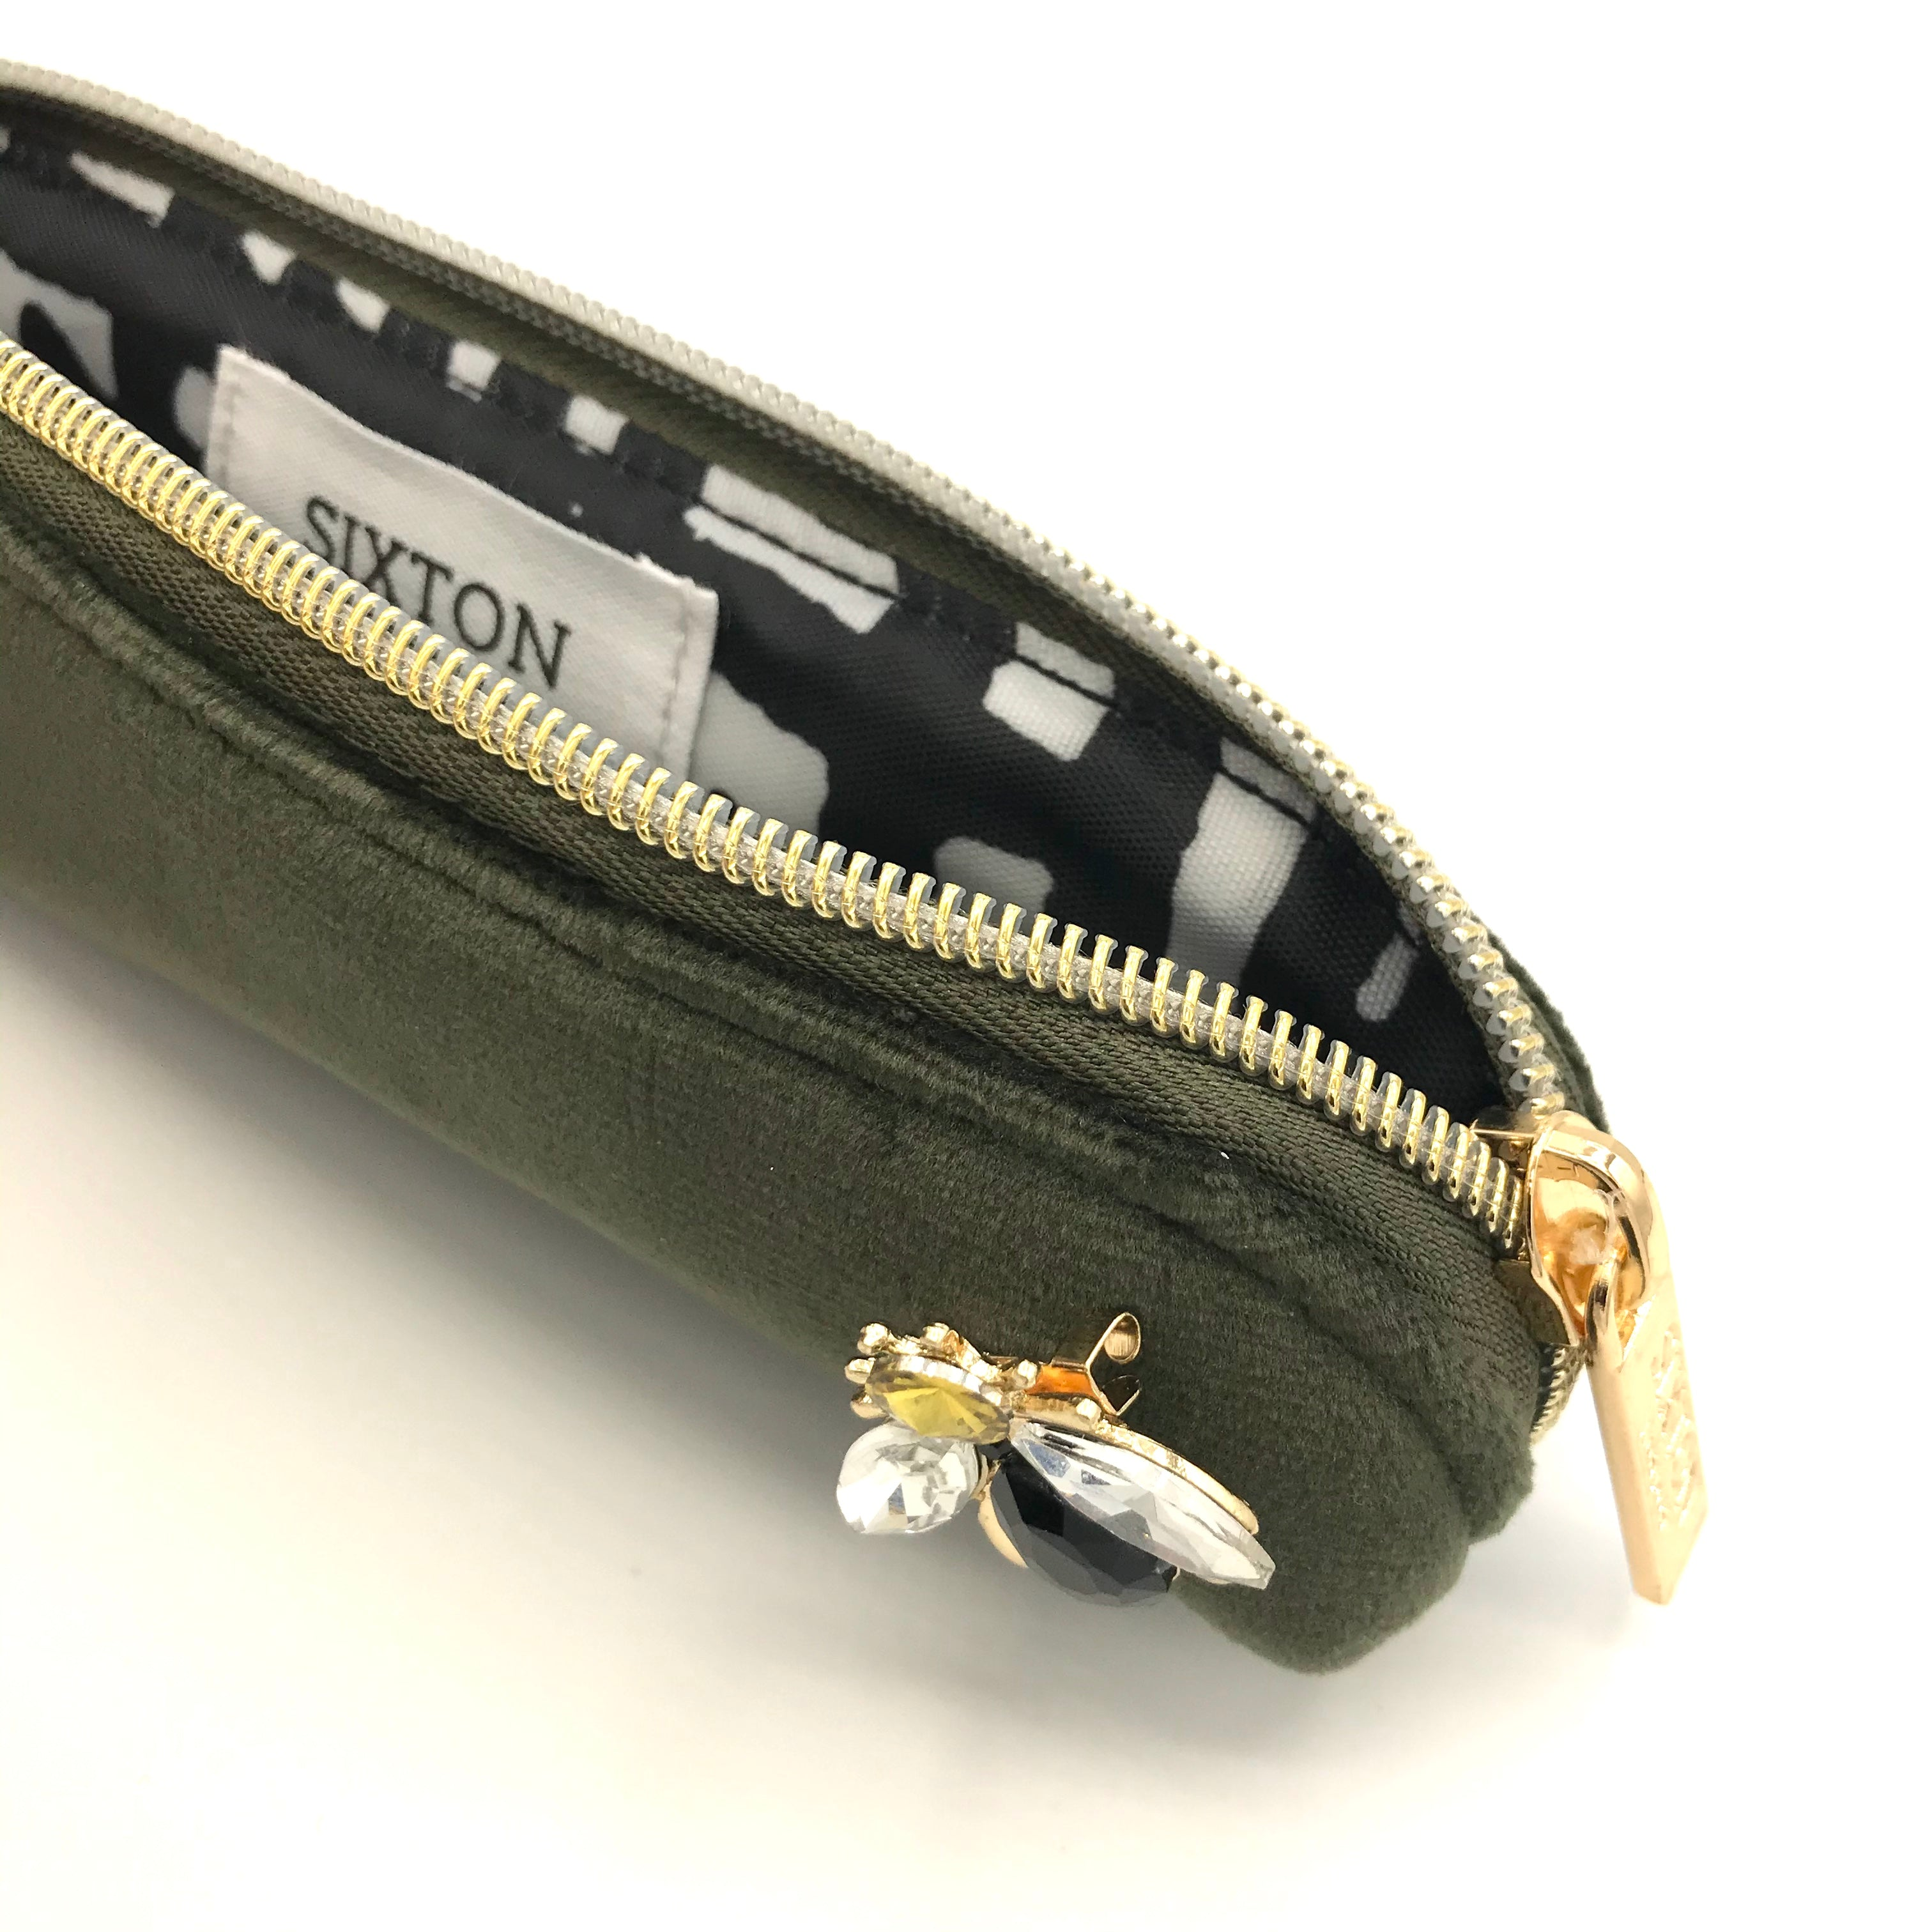 Pimlico pencil case in military olive